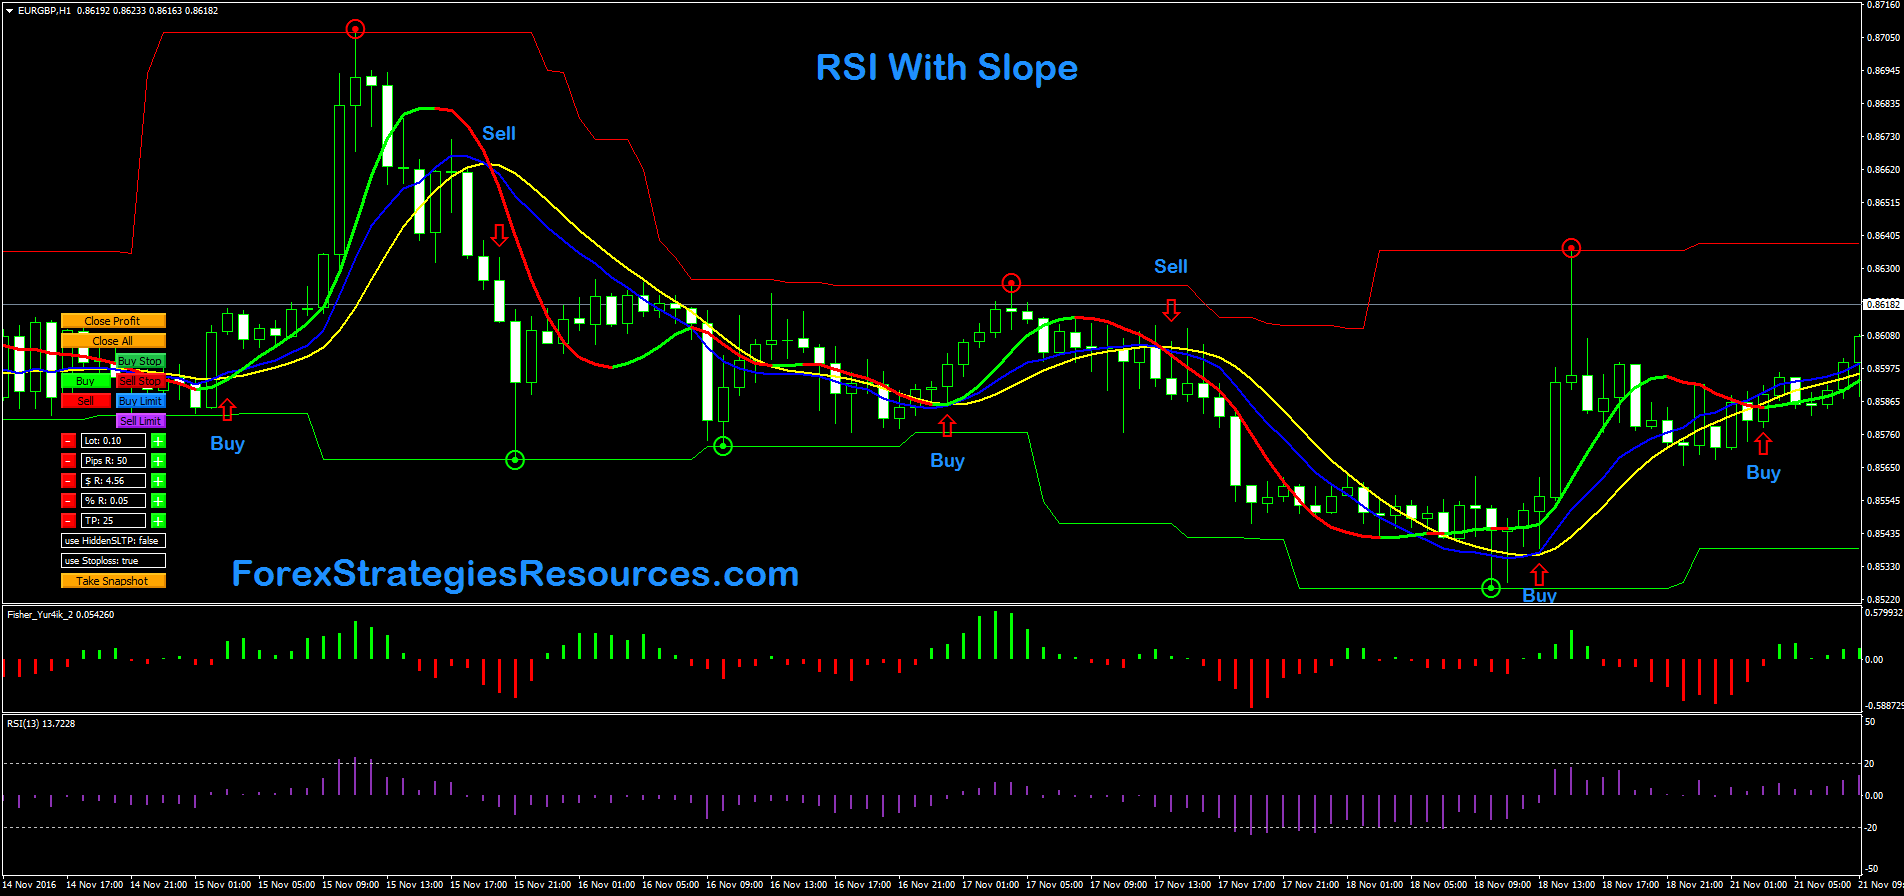 RSI with Slope - Forex Strategies - Forex Resources - Forex Trading